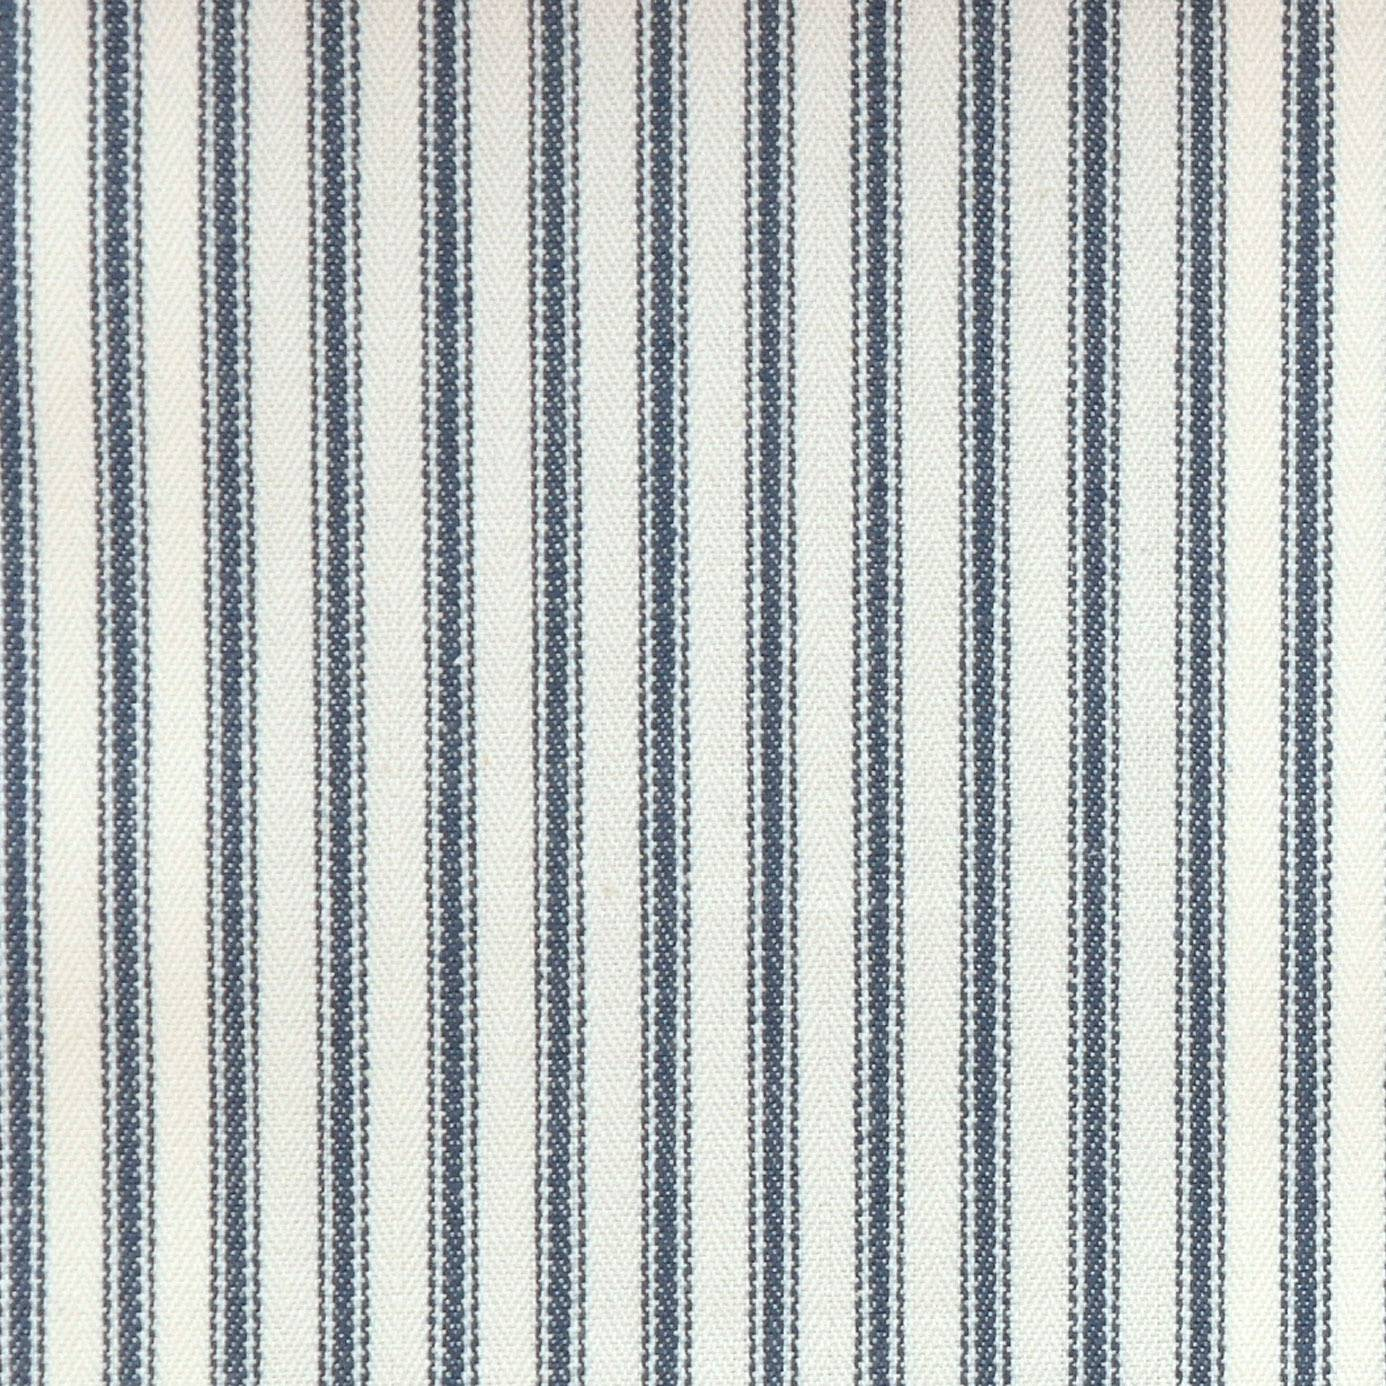 sutton fabric navy f0420 04 clarke clarke ticking